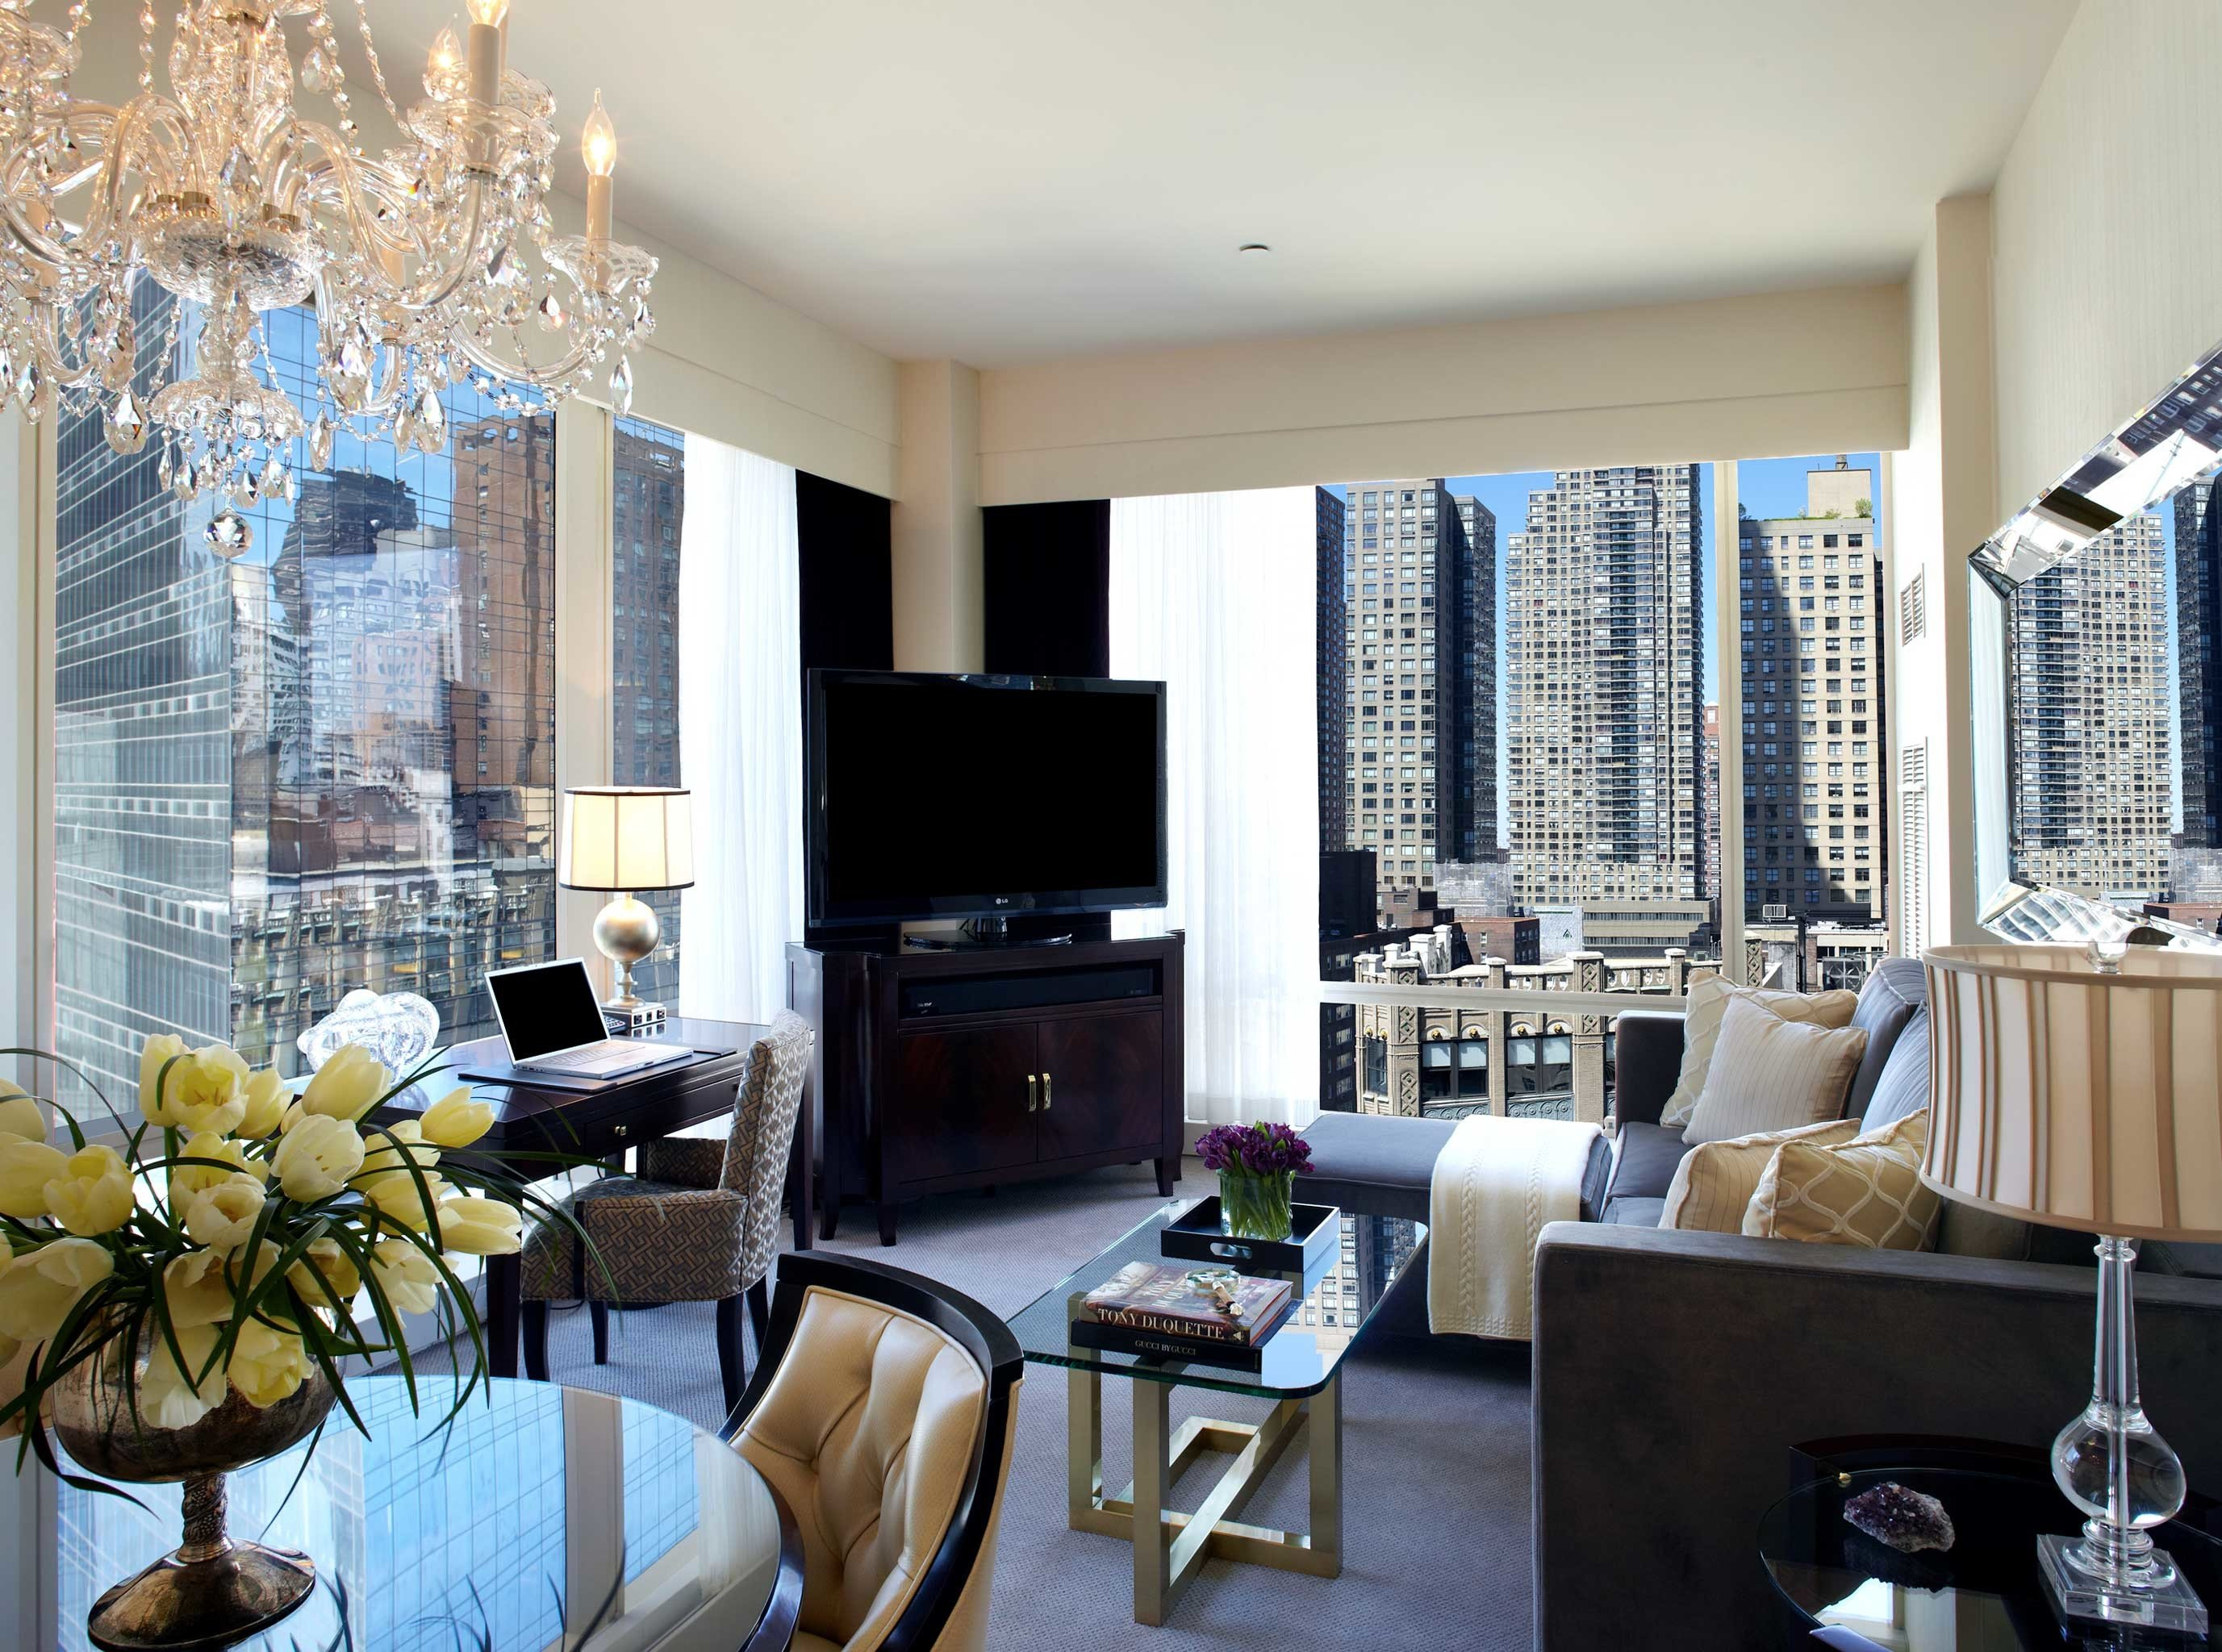 City Elegant Luxury Suite living room property home condominium Dining